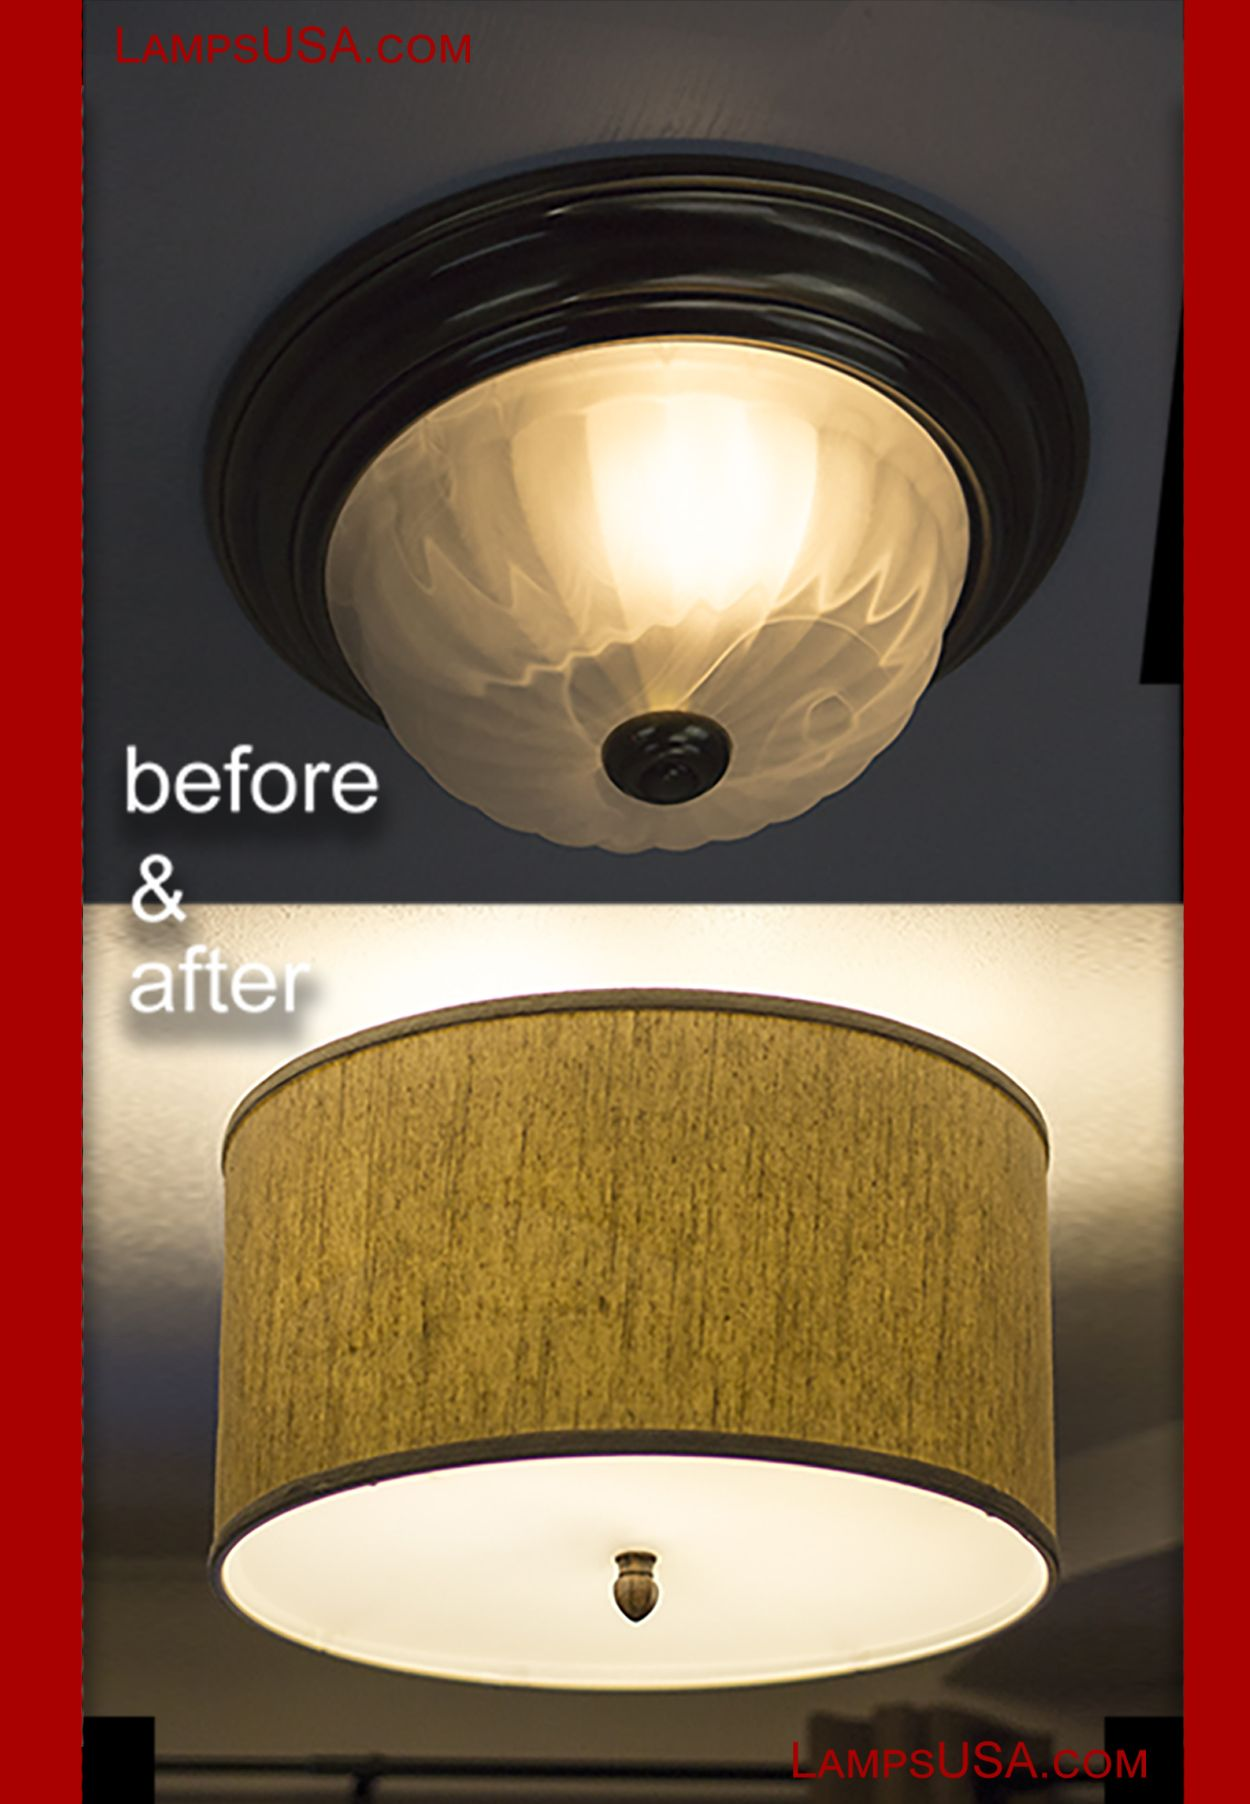 How To Install Modern Ceiling Light Cover Conversion Kits Ceiling Lights Porch Light Fixtures Modern Ceiling Light